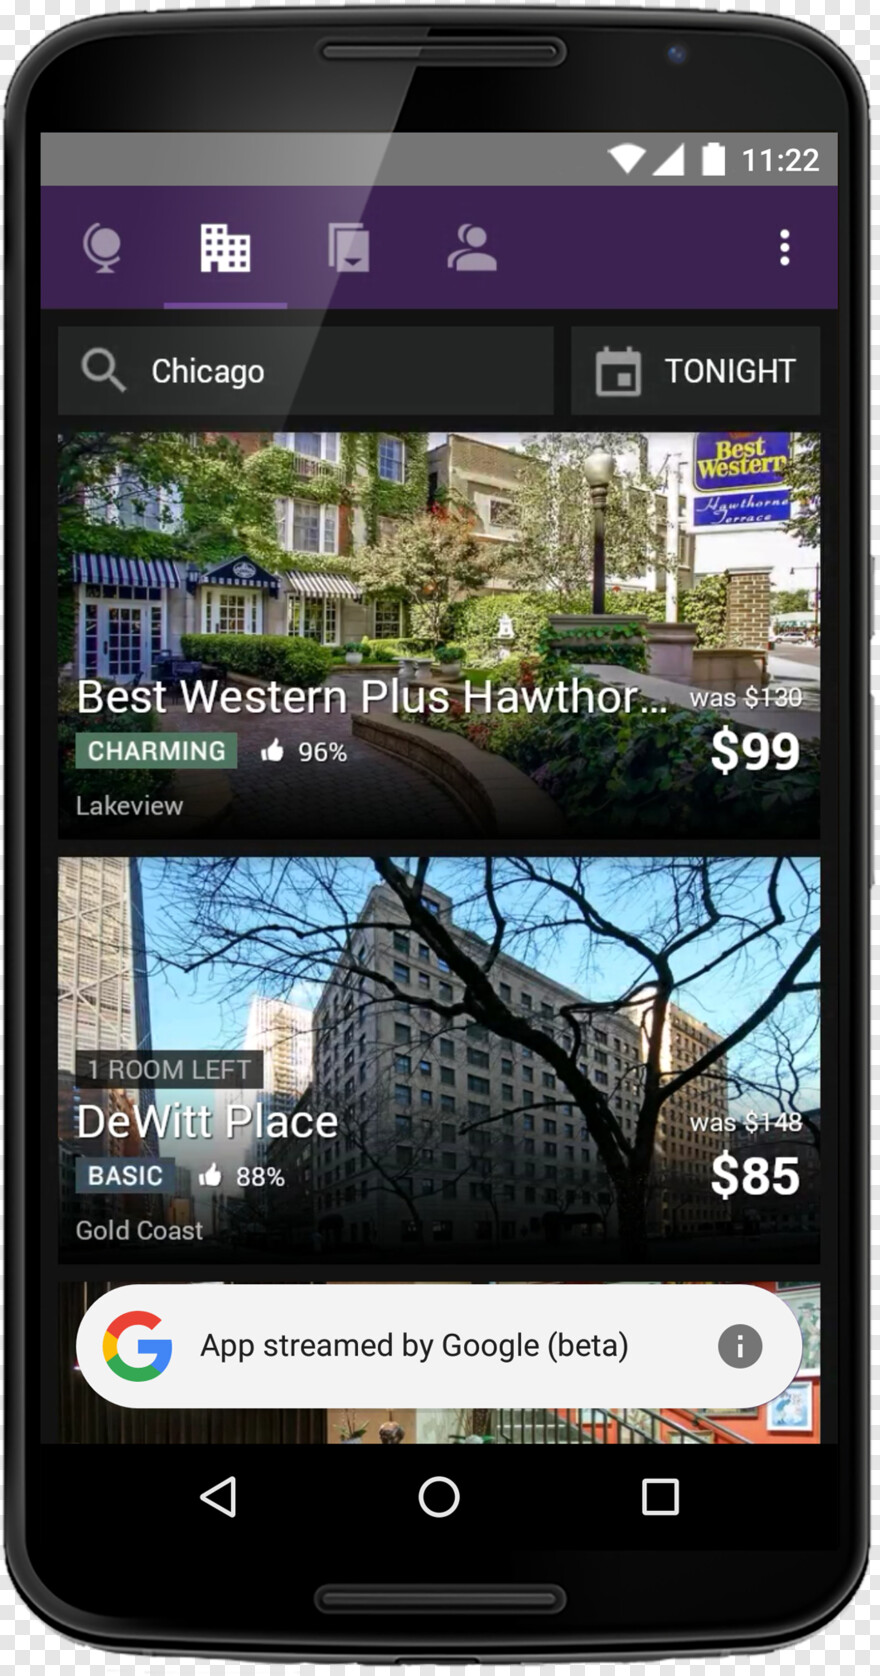 Best Western Plus Logo App Indexing Ios Hotel Tonight Hd Png Download 1062x2023 8664254 Png Image Pngjoy